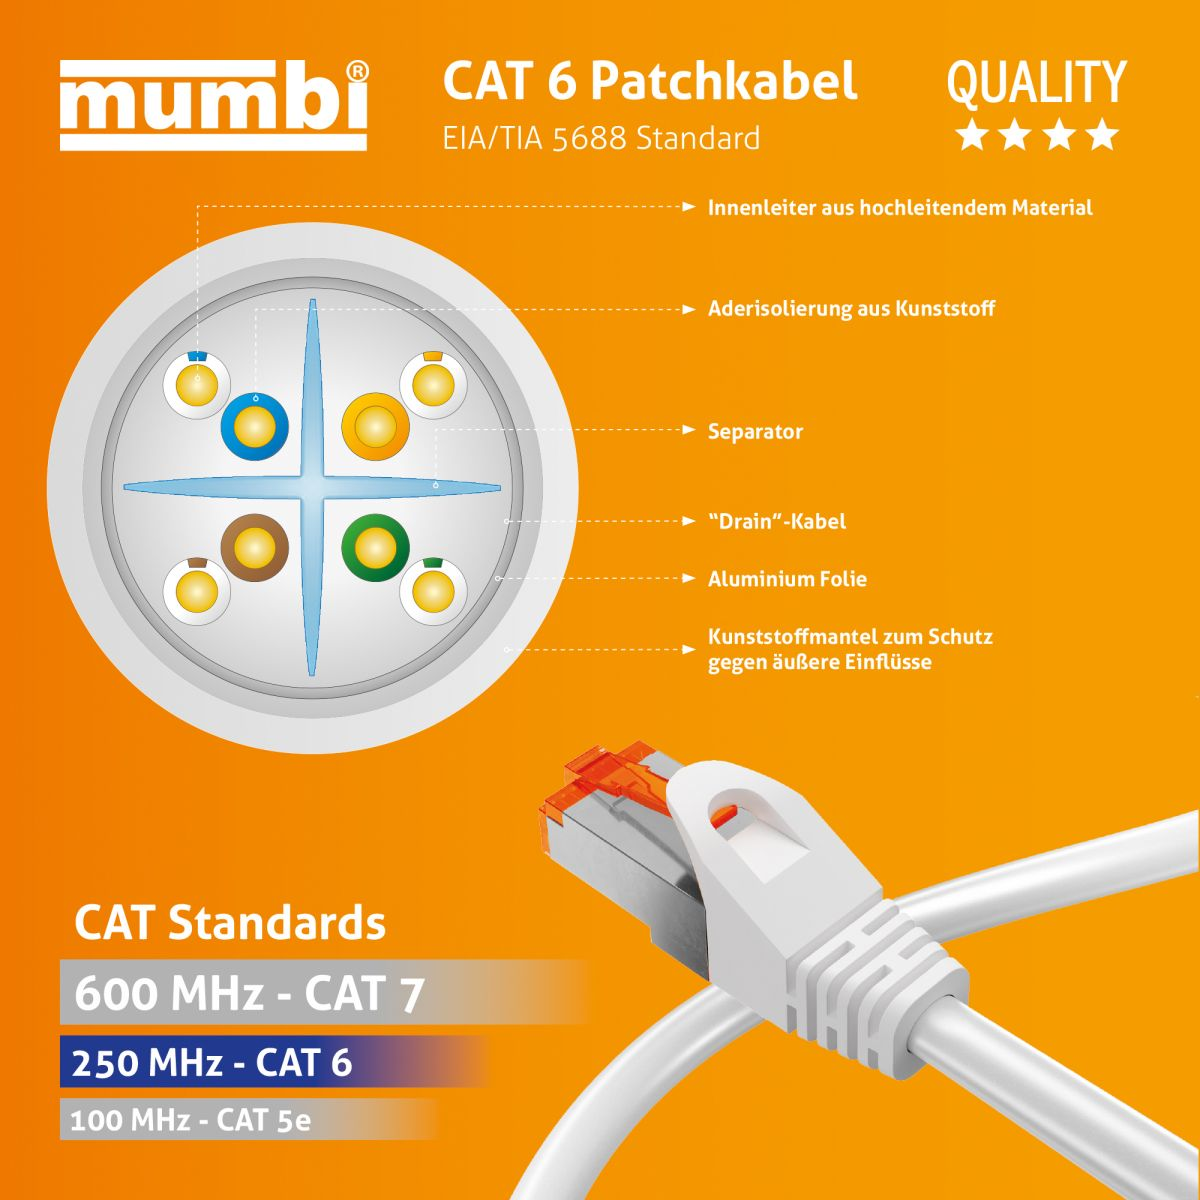 mumbi 5m cat6 netzwerkkabel patchkabel ethernet kabel lan dsl weiss 4251077249694 ebay. Black Bedroom Furniture Sets. Home Design Ideas